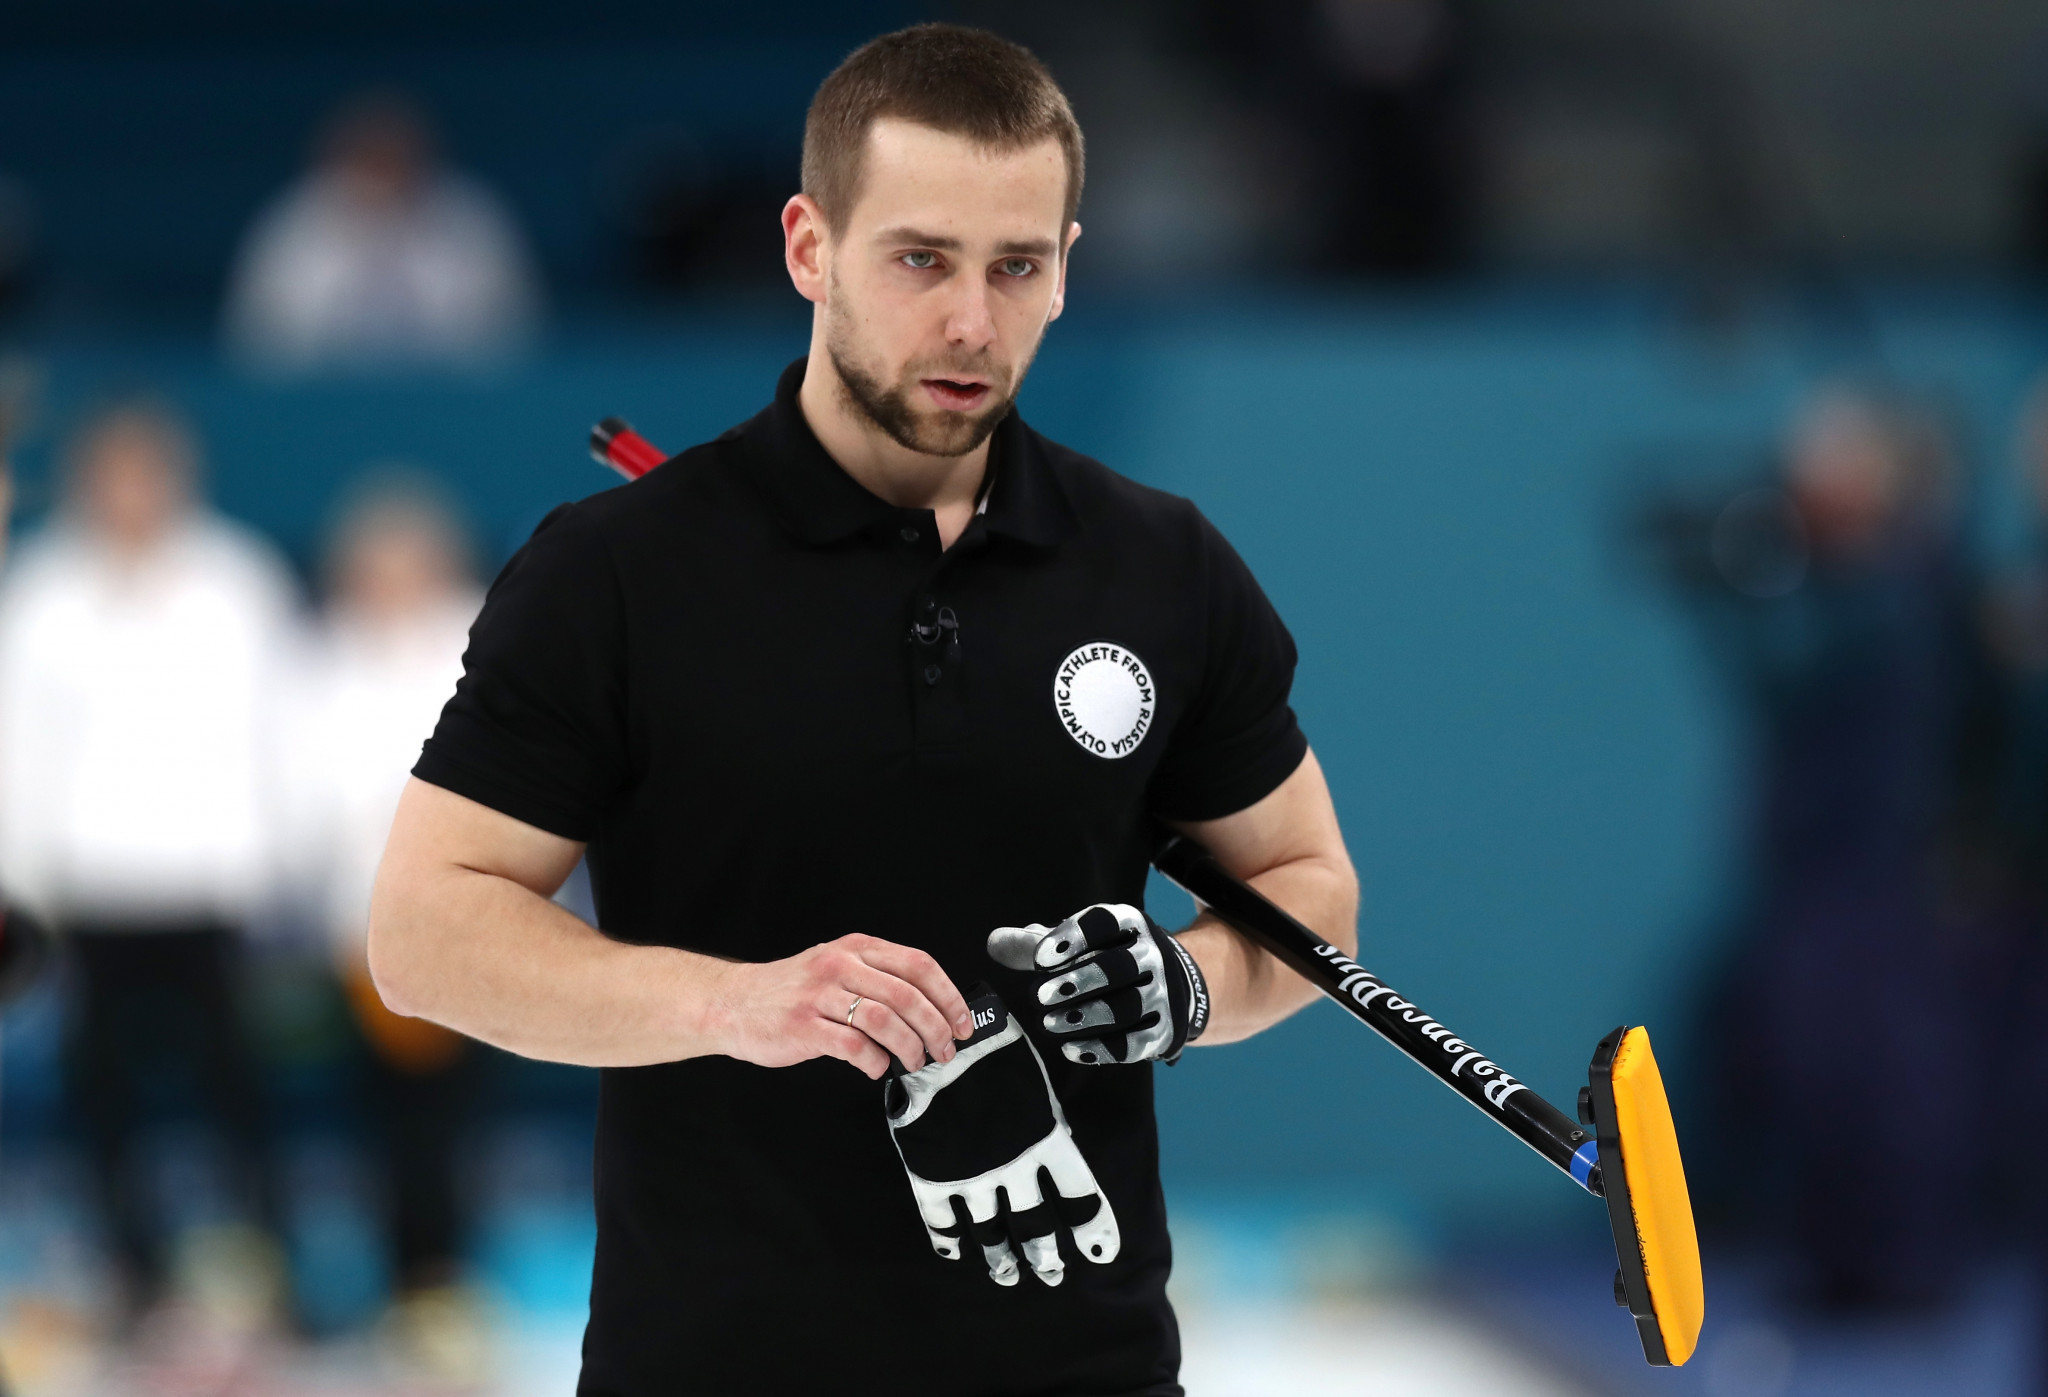 Curler Aleksandr Krushelnitckii was among two Russian athletes to fail drugs tests during Pyeongchang 2018 ©Getty Images